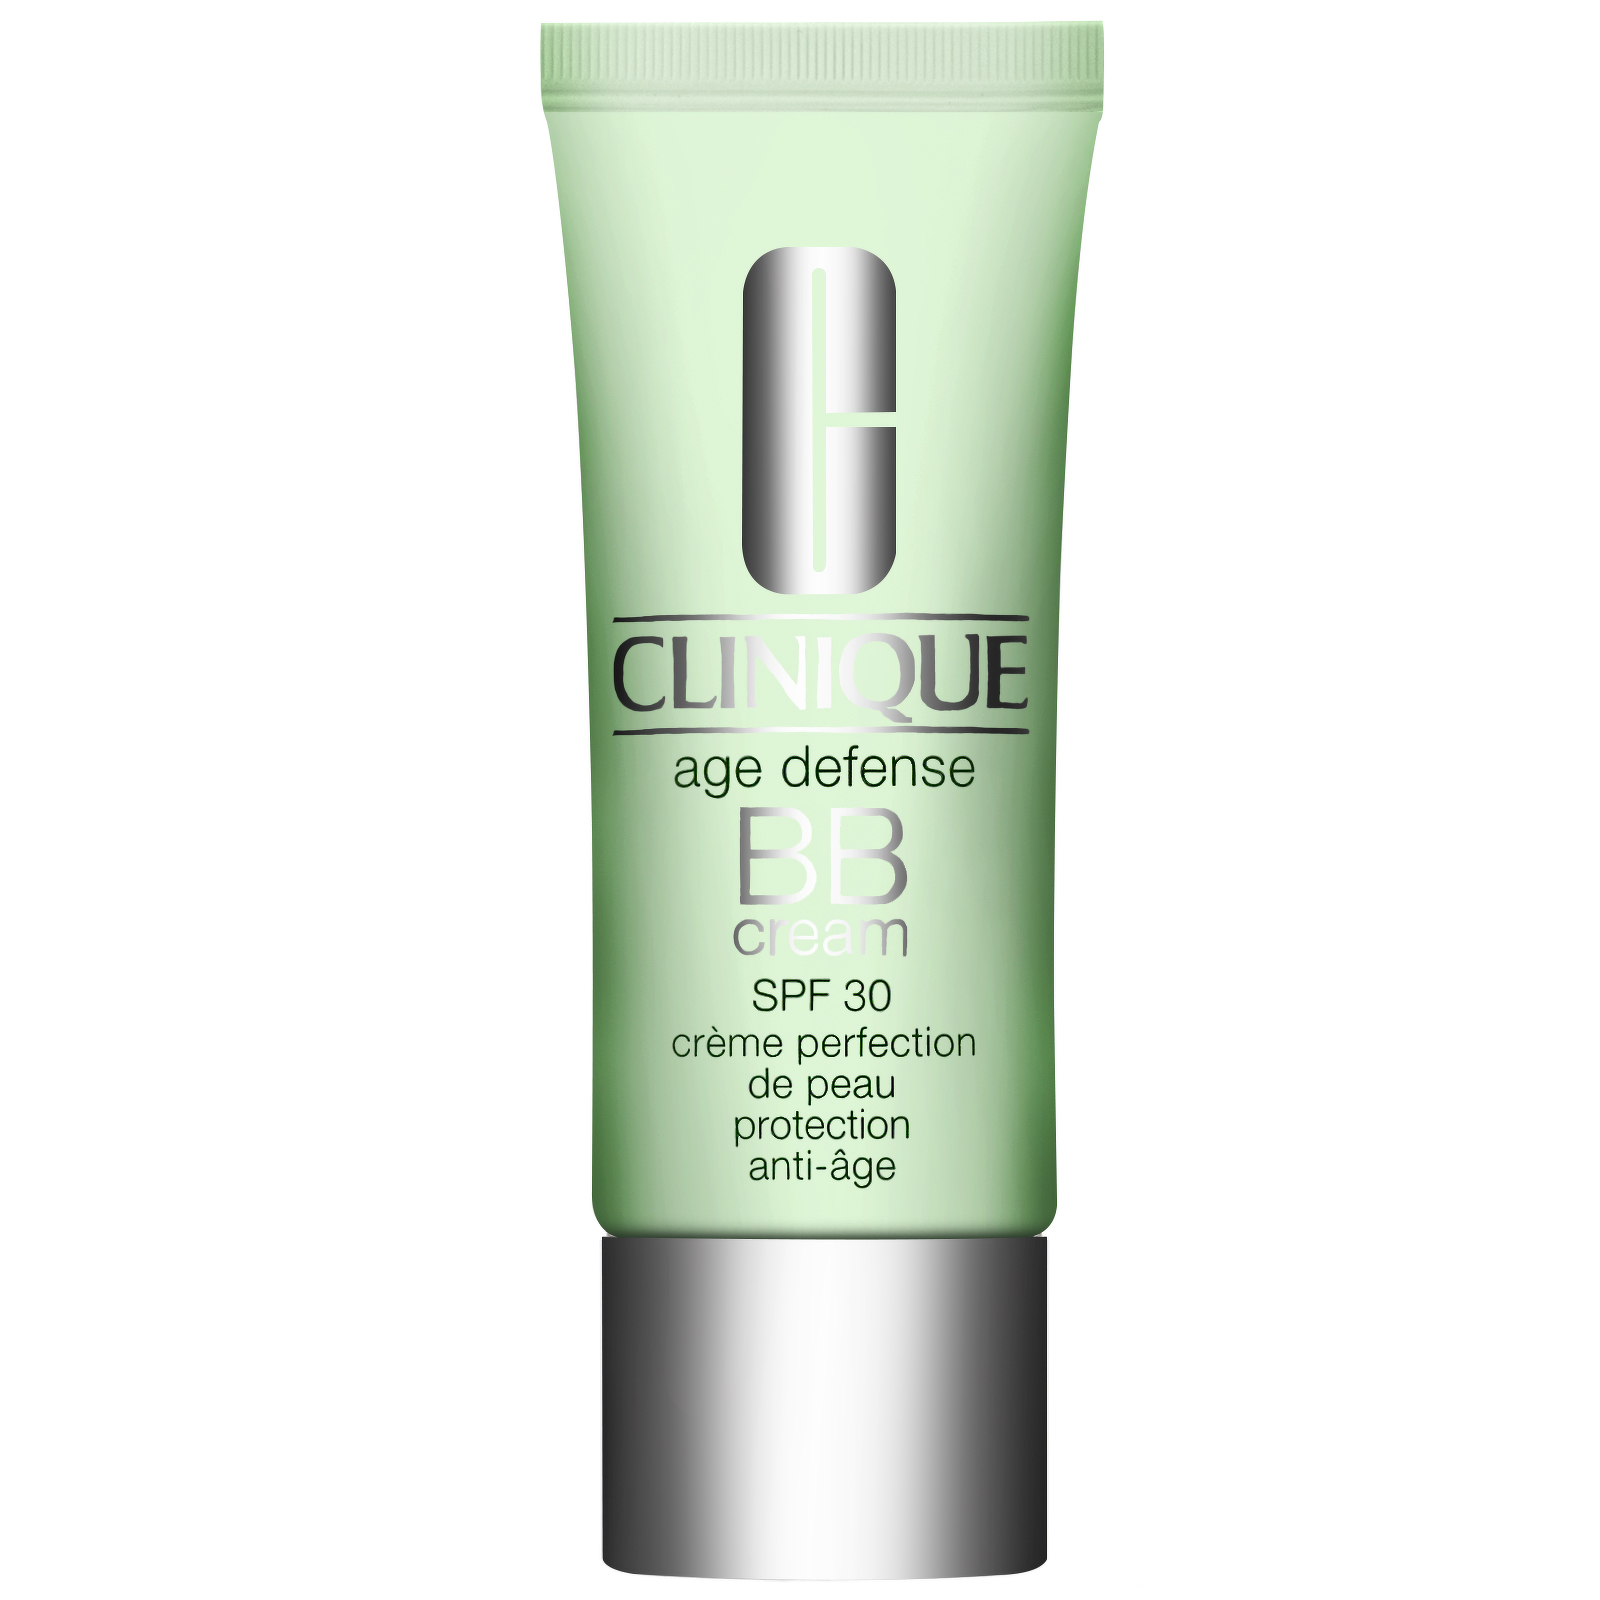 Clinique Age Defense BB Cream SPF30 Shade 03 moderatamente Fair medie con toni dorati 40ml / 1.4 FL. oz.